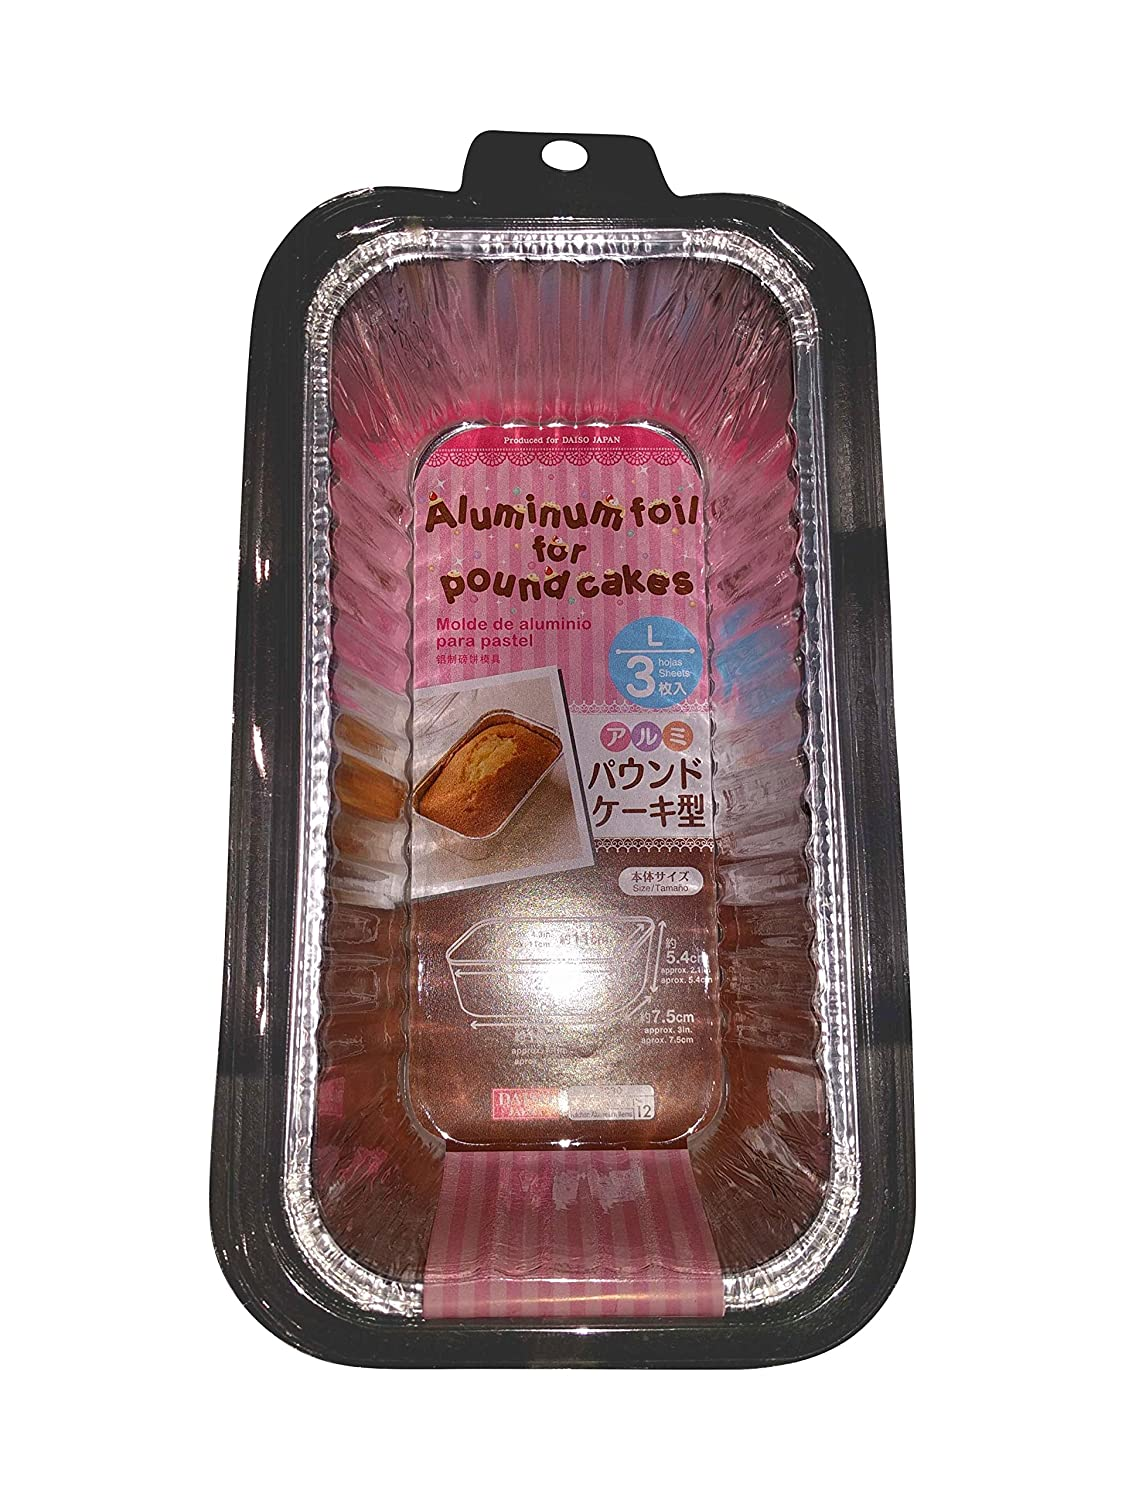 Amazon.com: Daiso Japan - 3 Piece Mini Pound Cake And Loaf Pans - Disposable Aluminum Foil Small Bread Tins: Kitchen & Dining